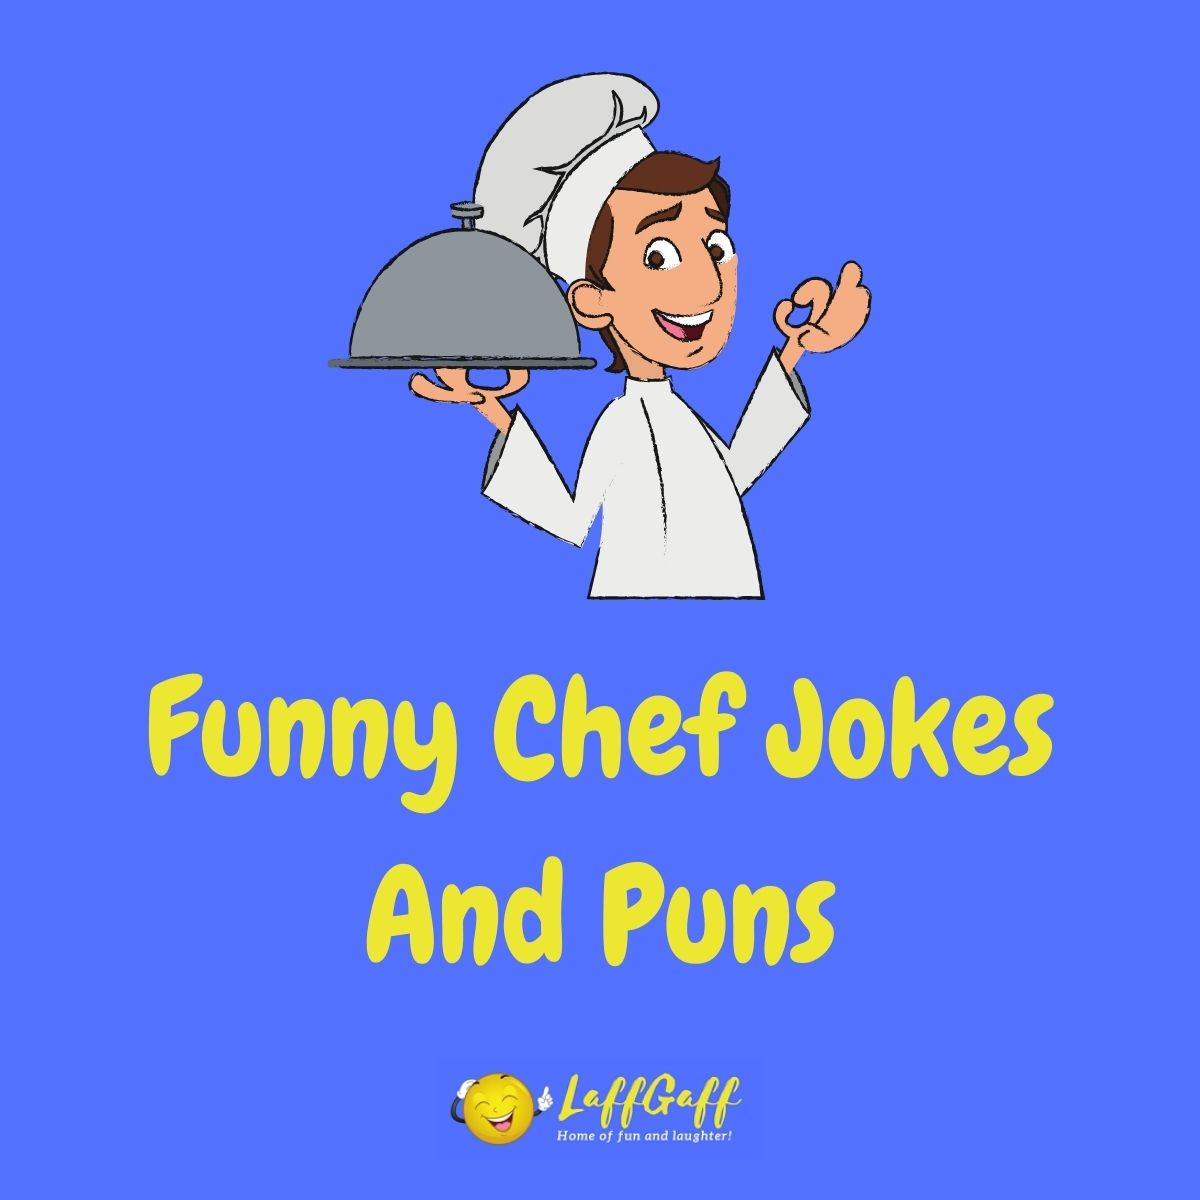 Featured image for a page of funny chef jokes and puns.